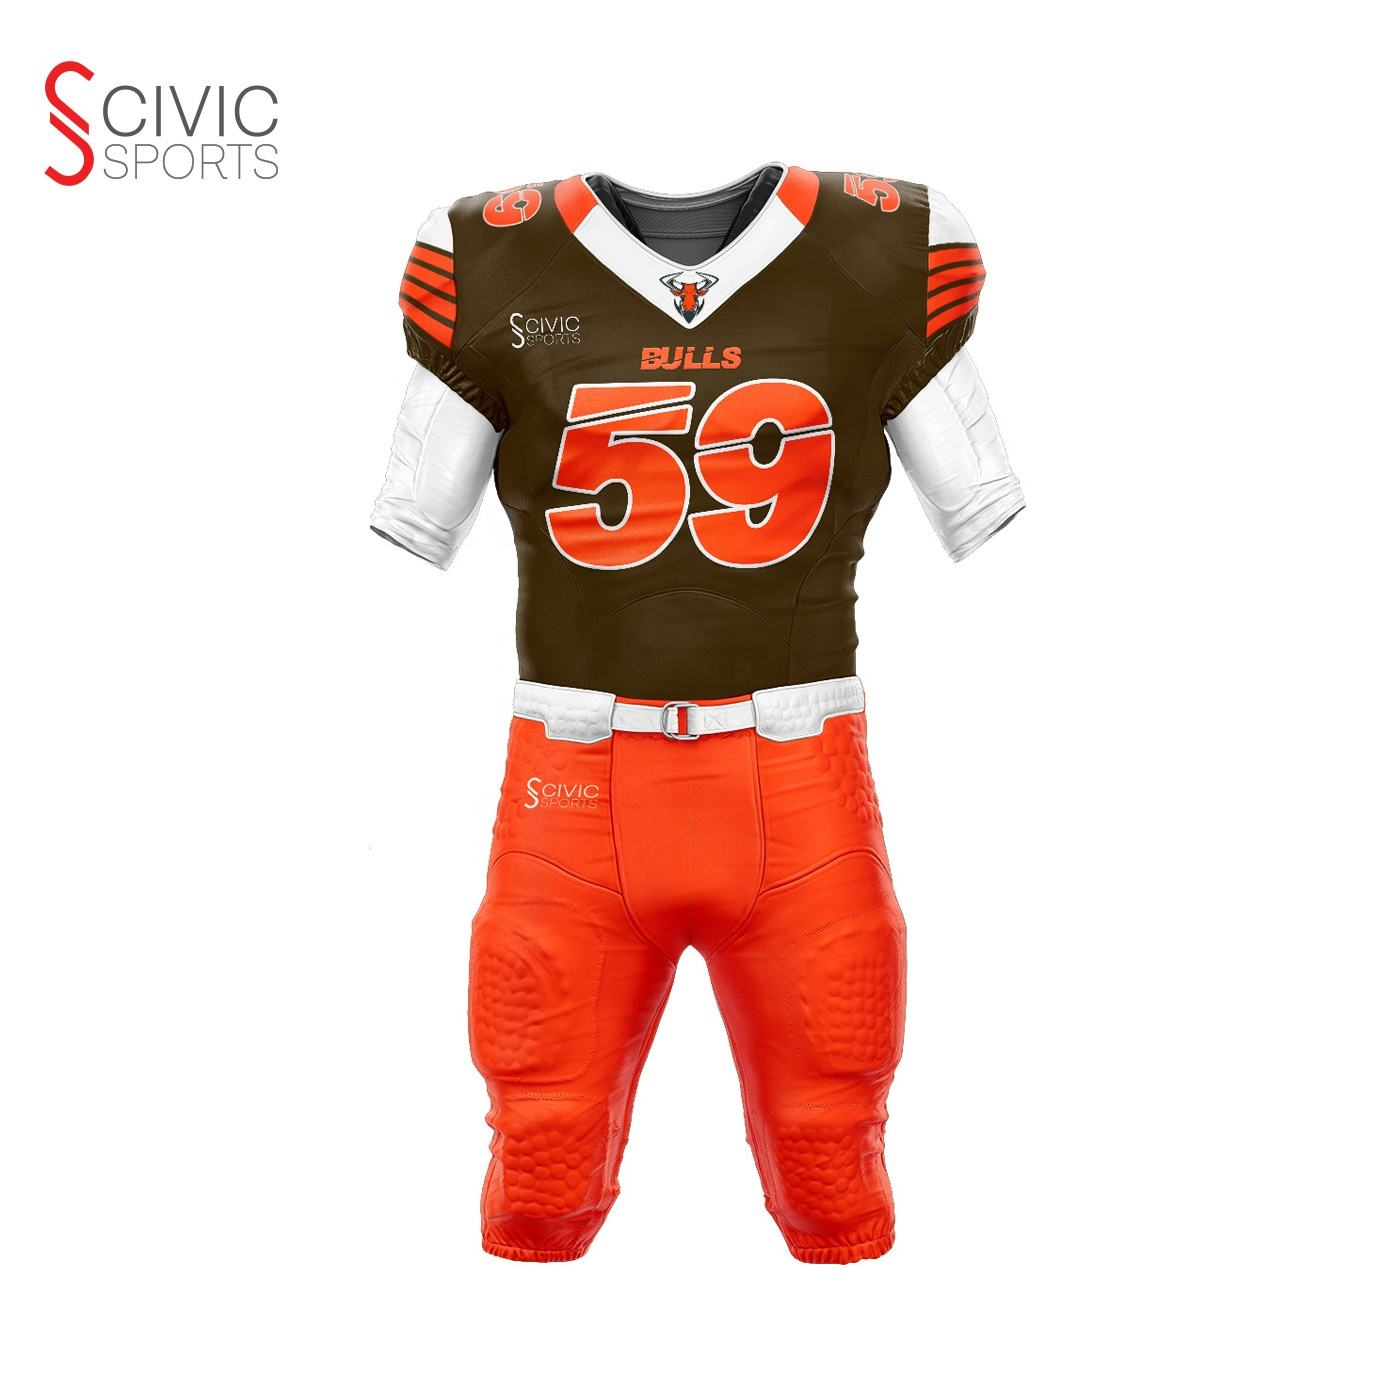 Stitched kids youth adult plain custom made American football practice jersey uniforms wear with pants